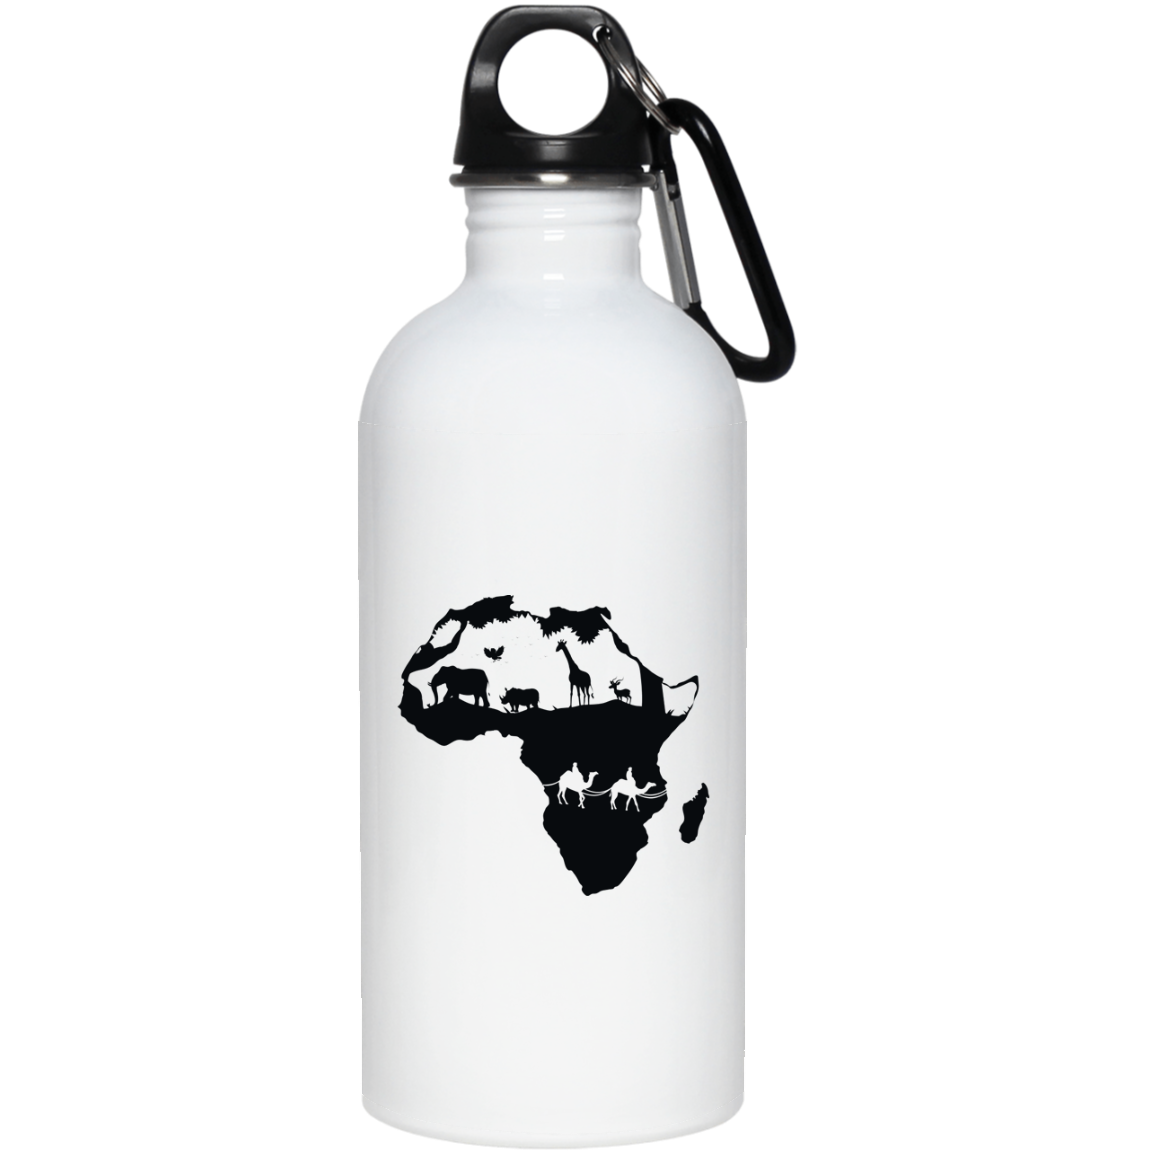 African Pride - African Continent 20 oz. Stainless Steel Water Bottle